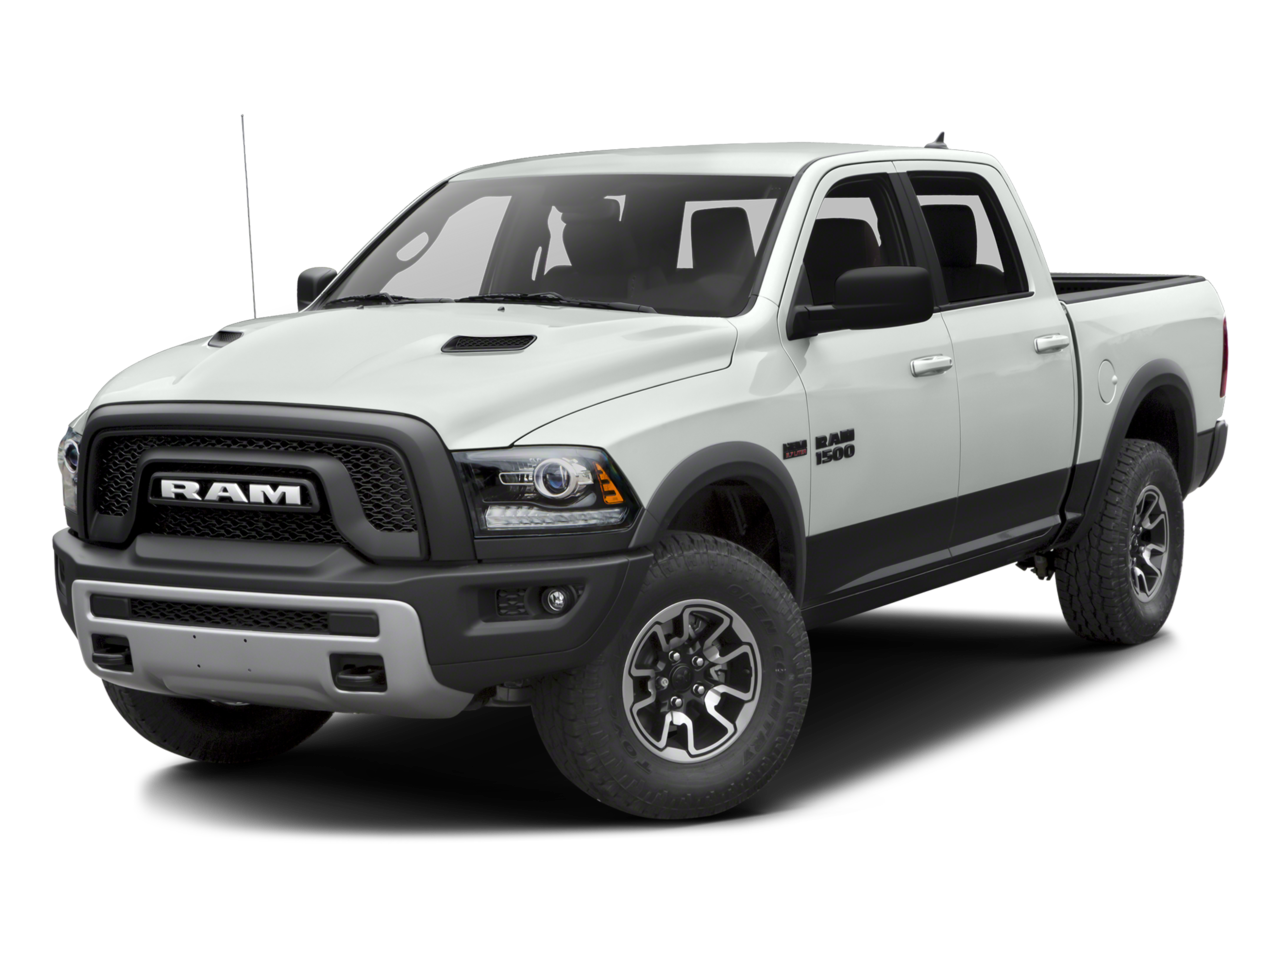 2016 ram 1500 rebel for sale in enfield ct artioli chrysler dodge ram. Black Bedroom Furniture Sets. Home Design Ideas